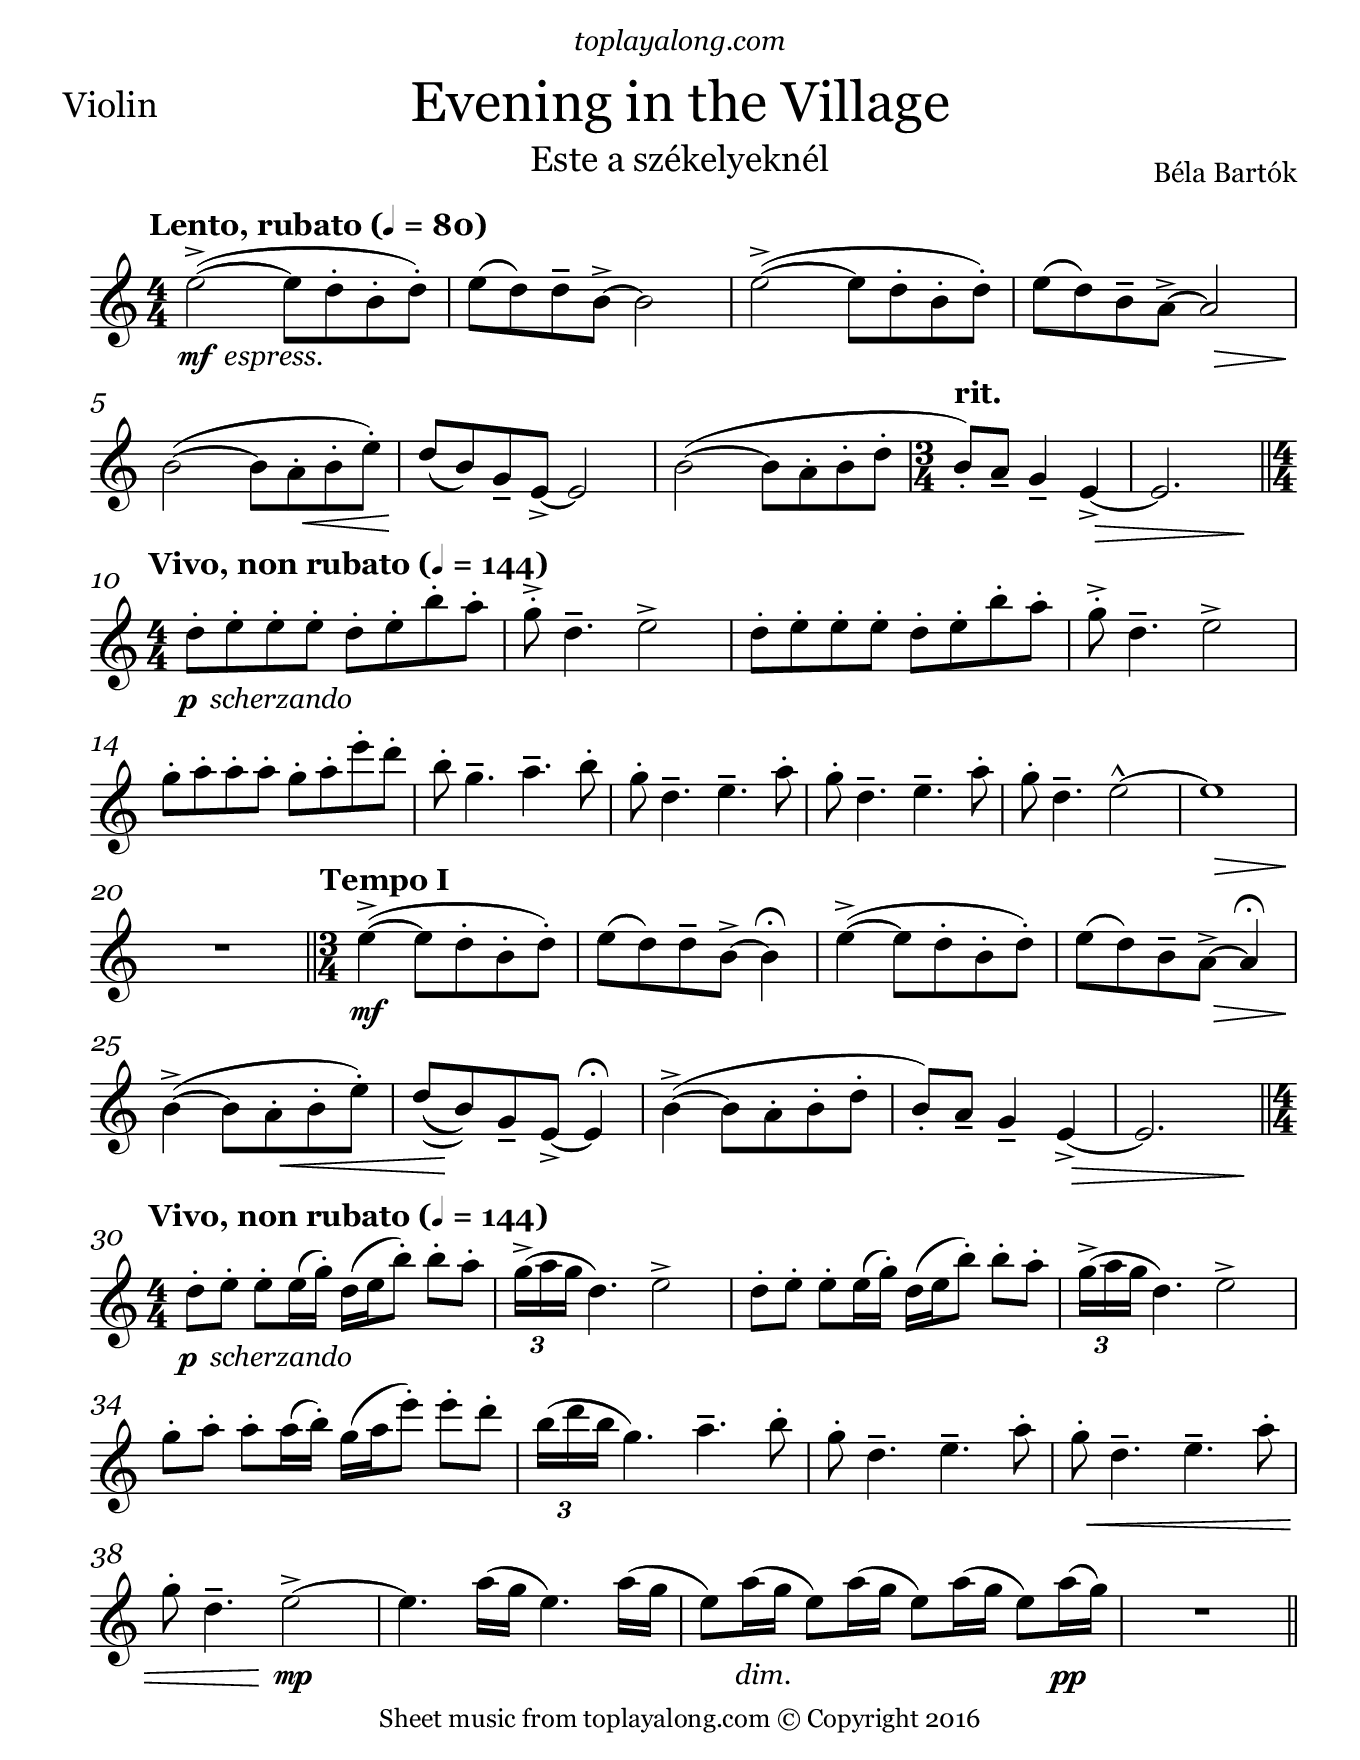 Evening in the Village by Bartok. Sheet music for Violin, page 1.